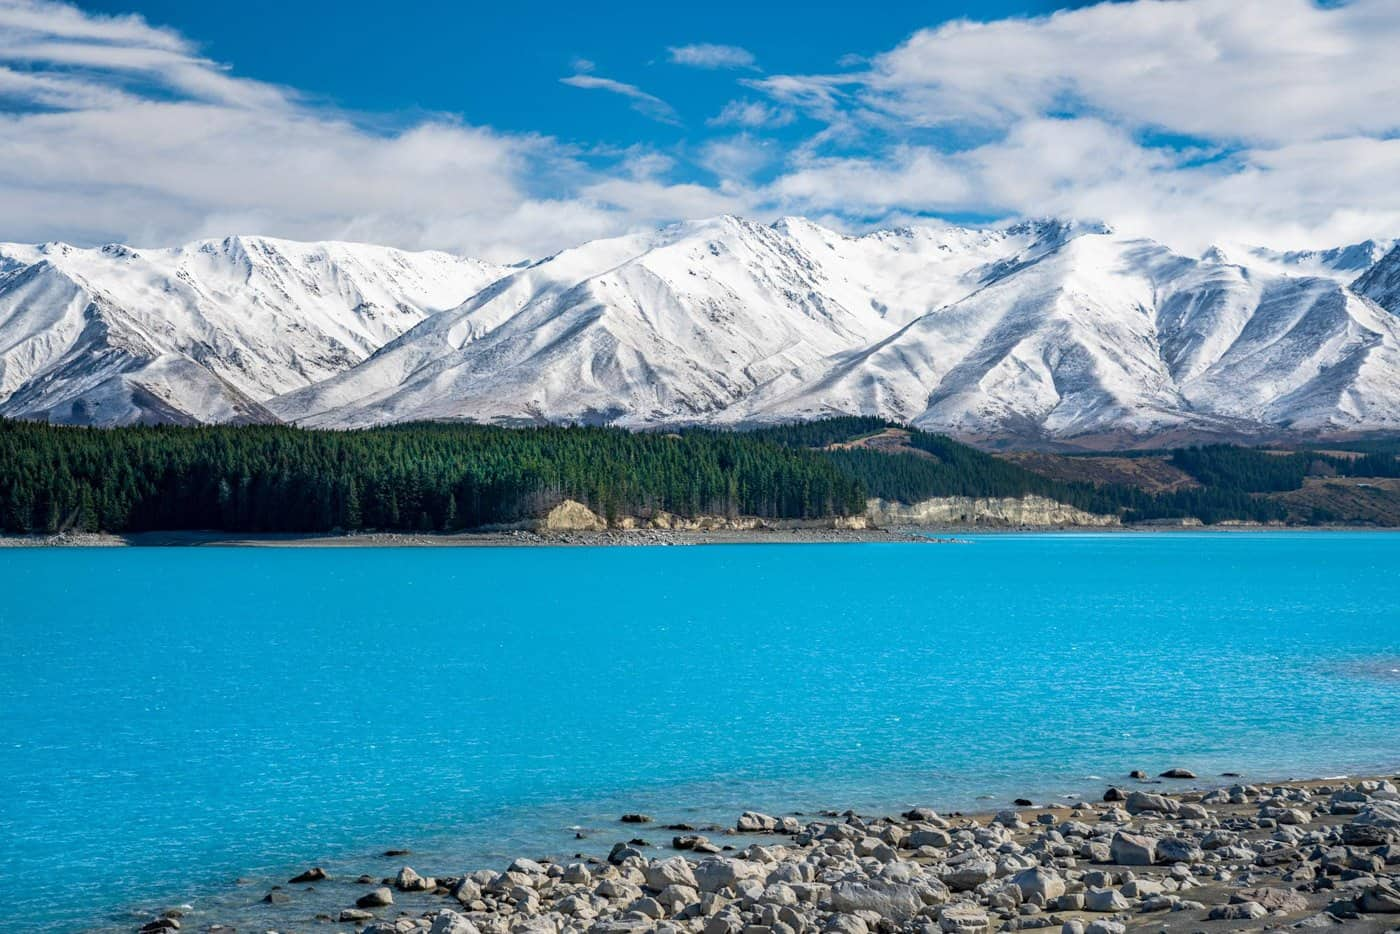 Snowy mountains and crystal clear air define August in New Zealand.